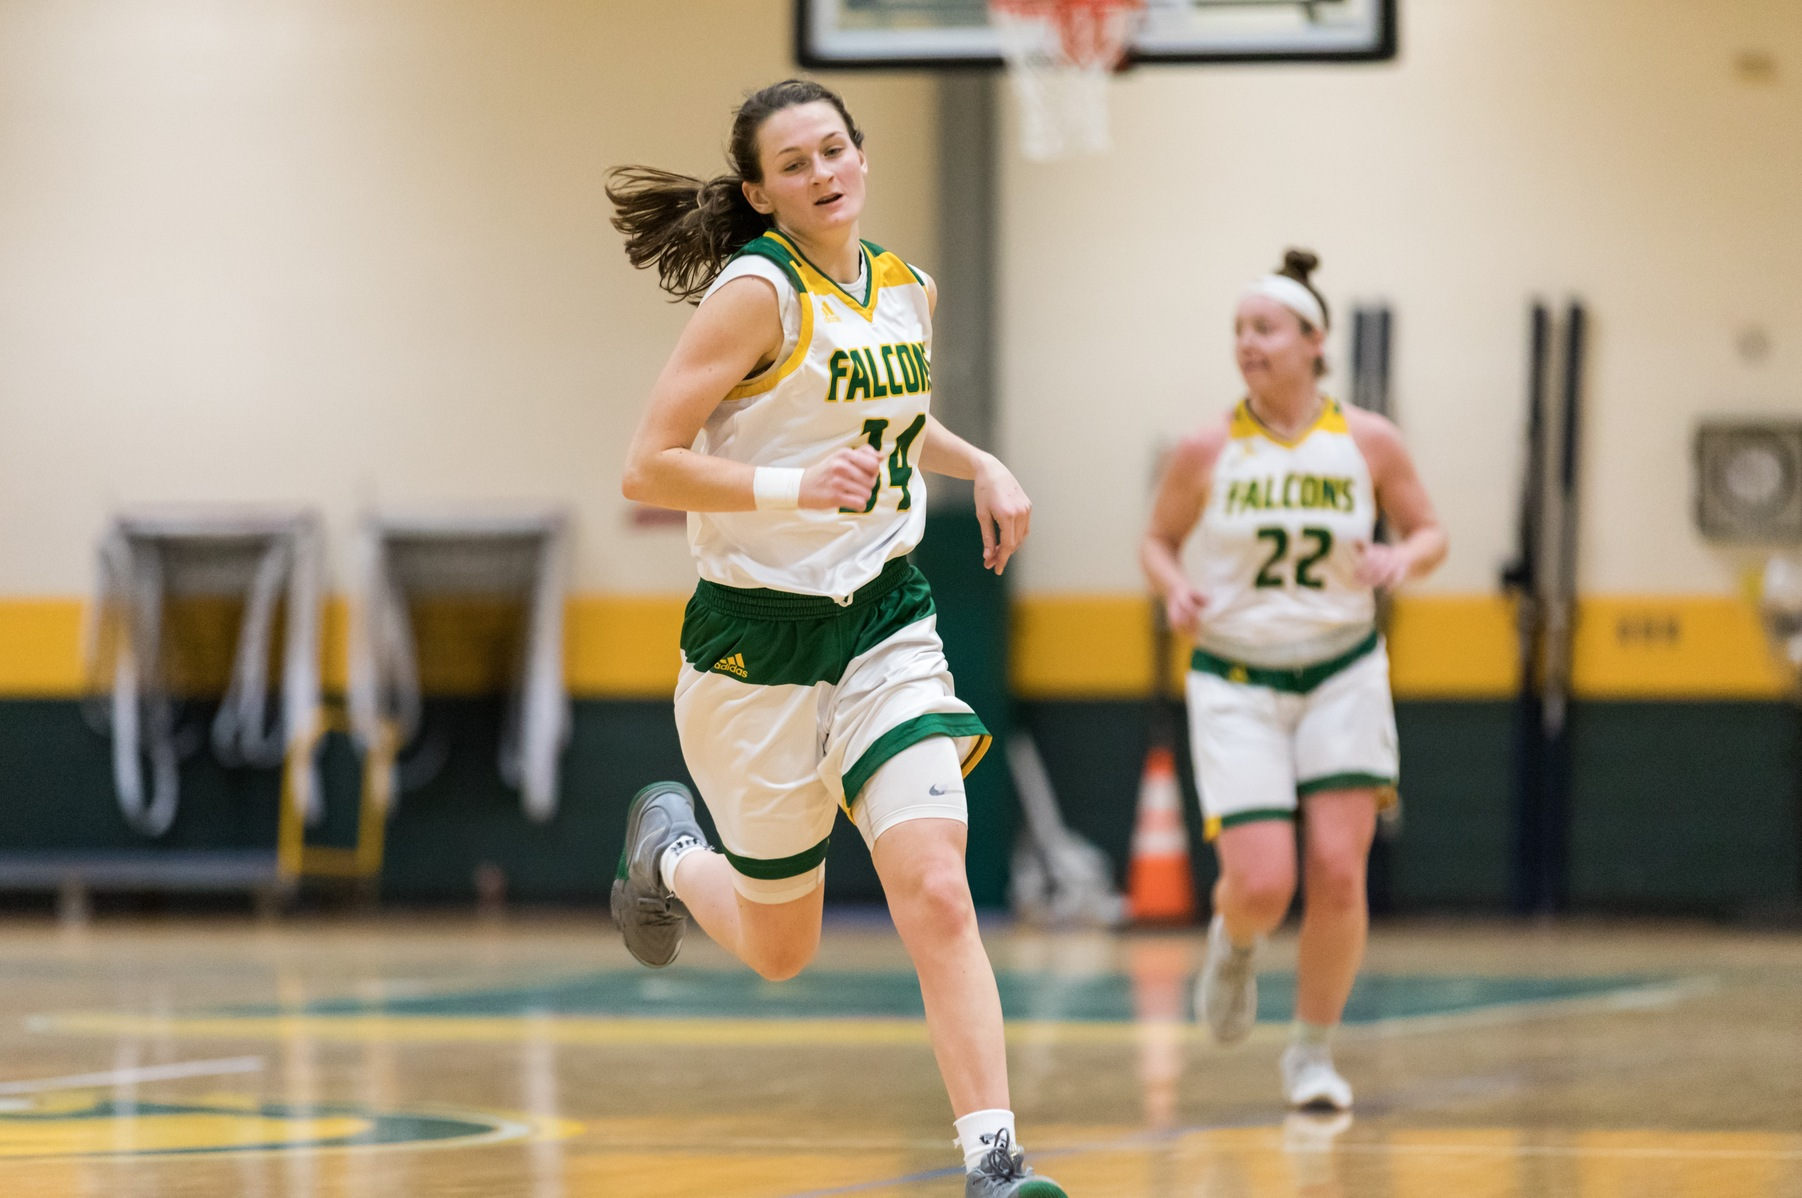 Falcons Fall to Trailblazers in MASCAC action, 74-56